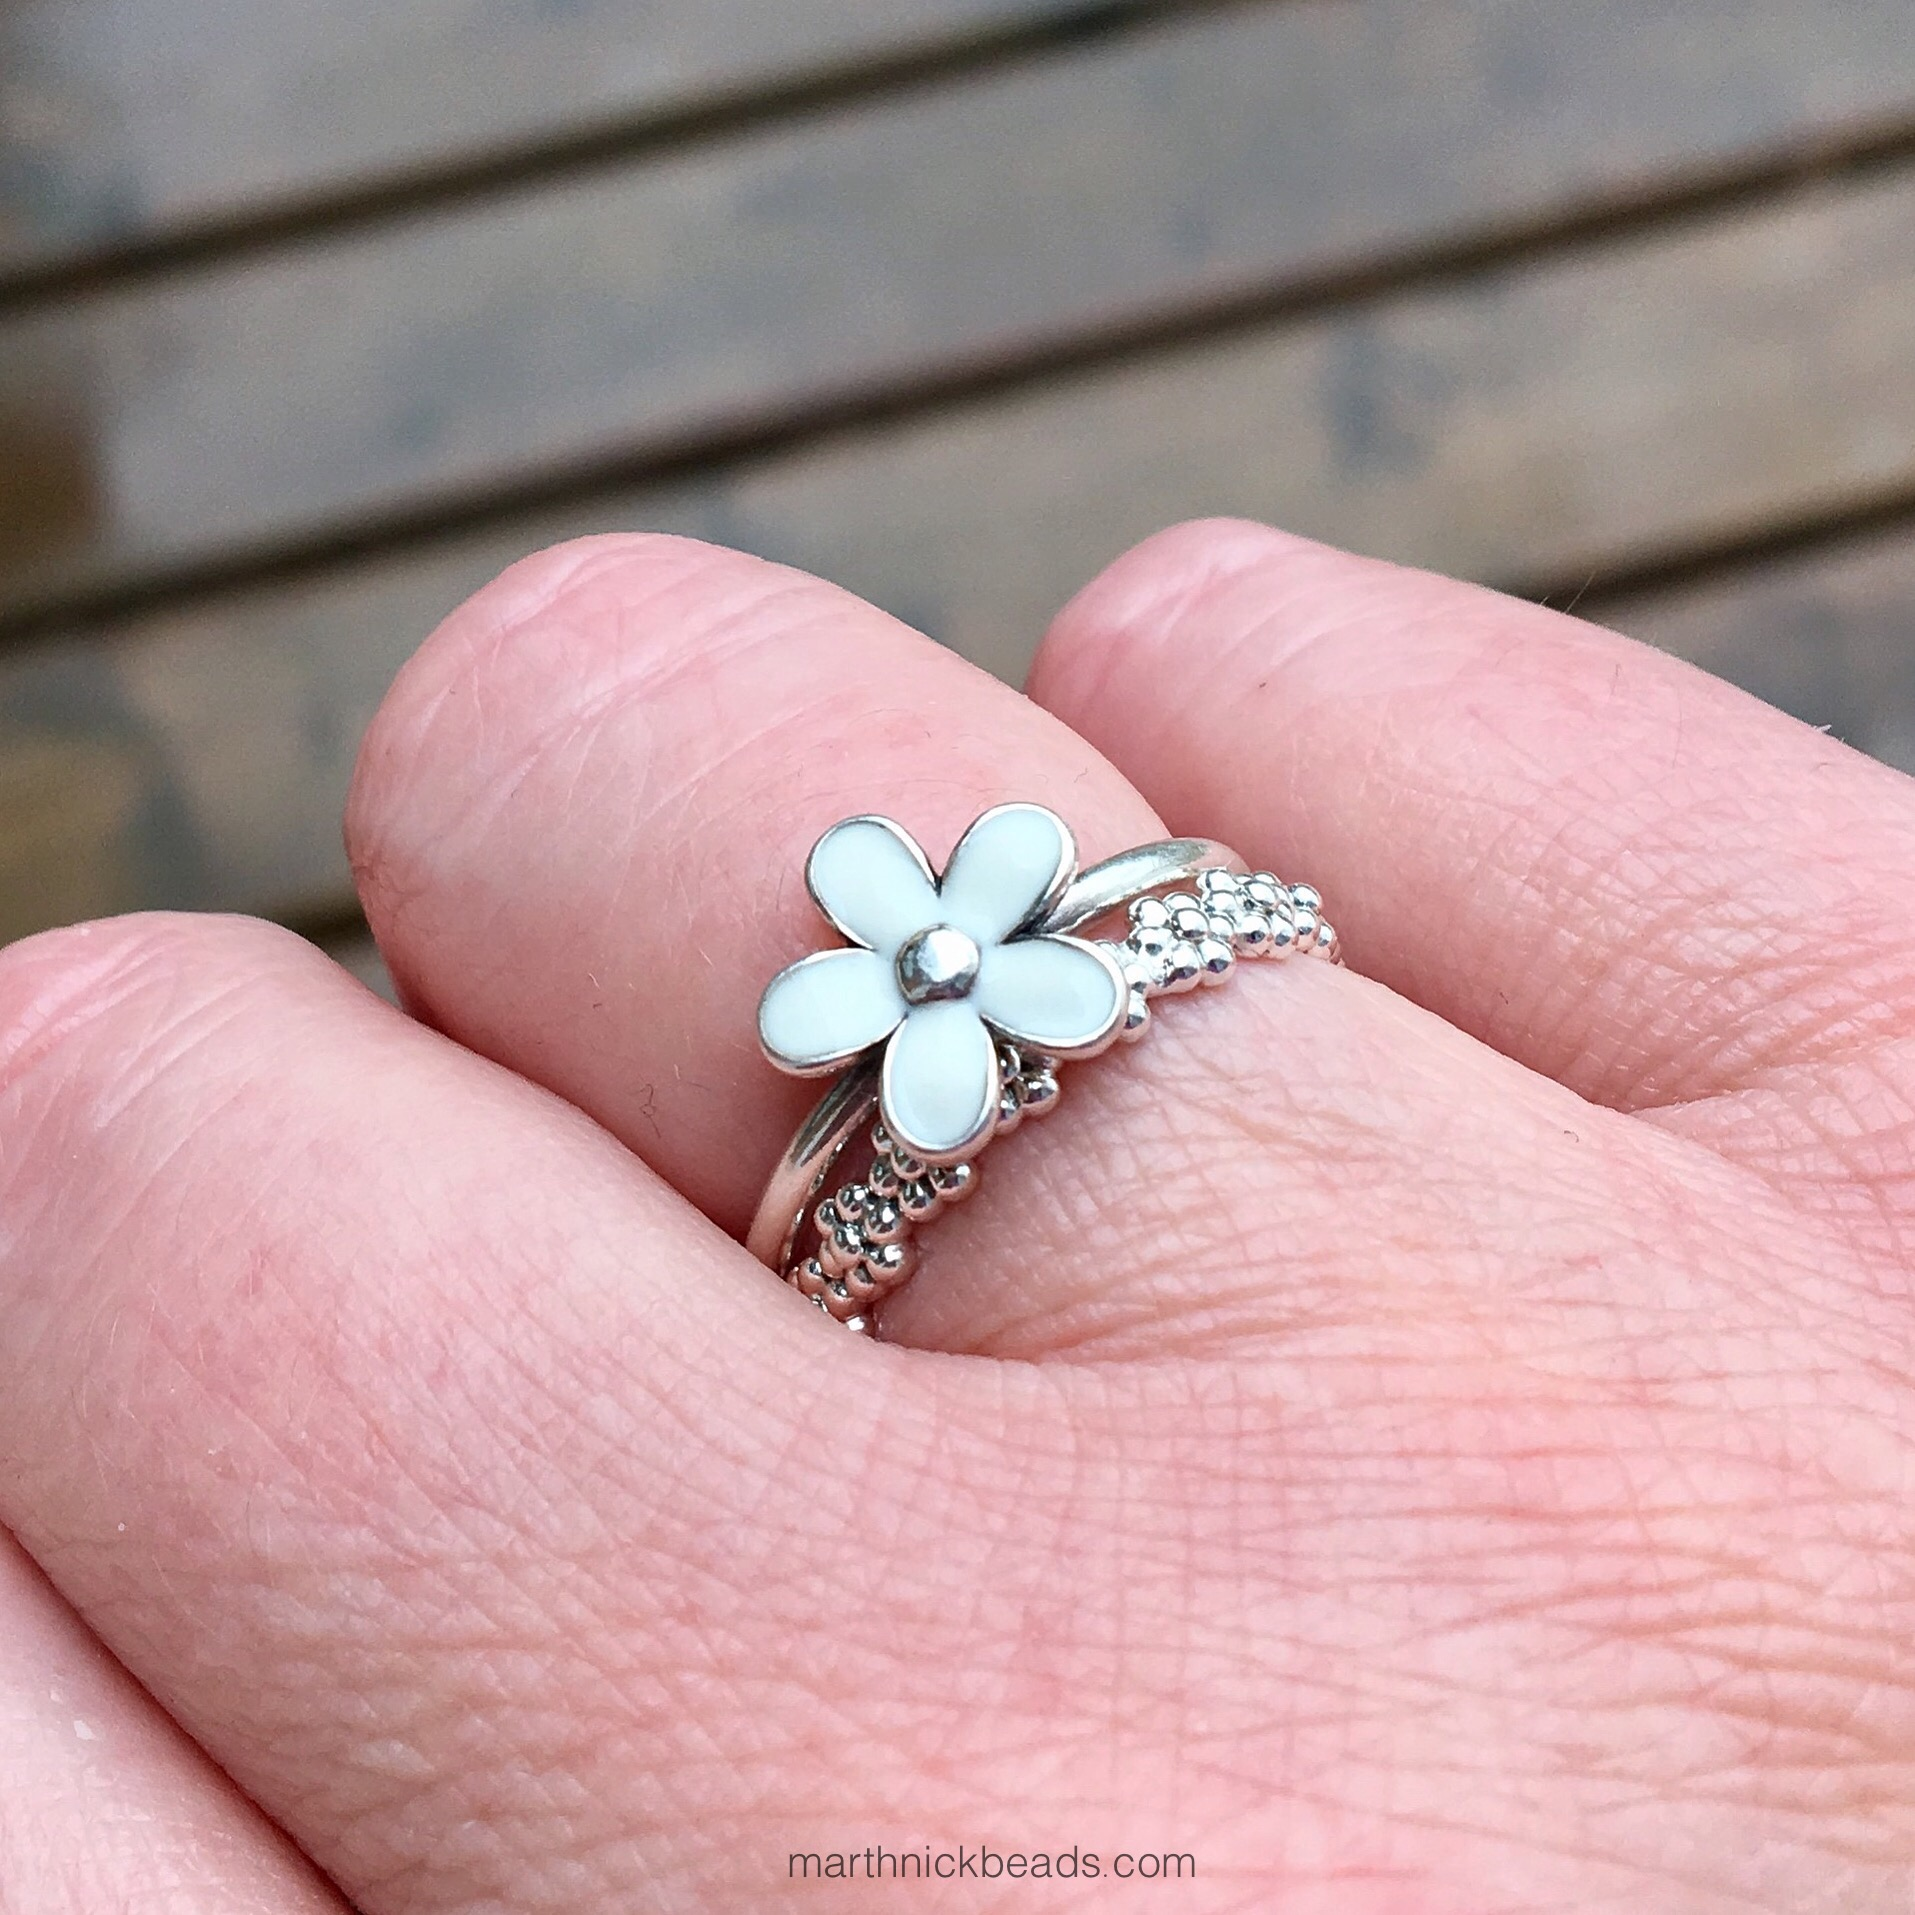 Pandora Field of Flowers and Sweet Daisies Ring – marthnickbeads